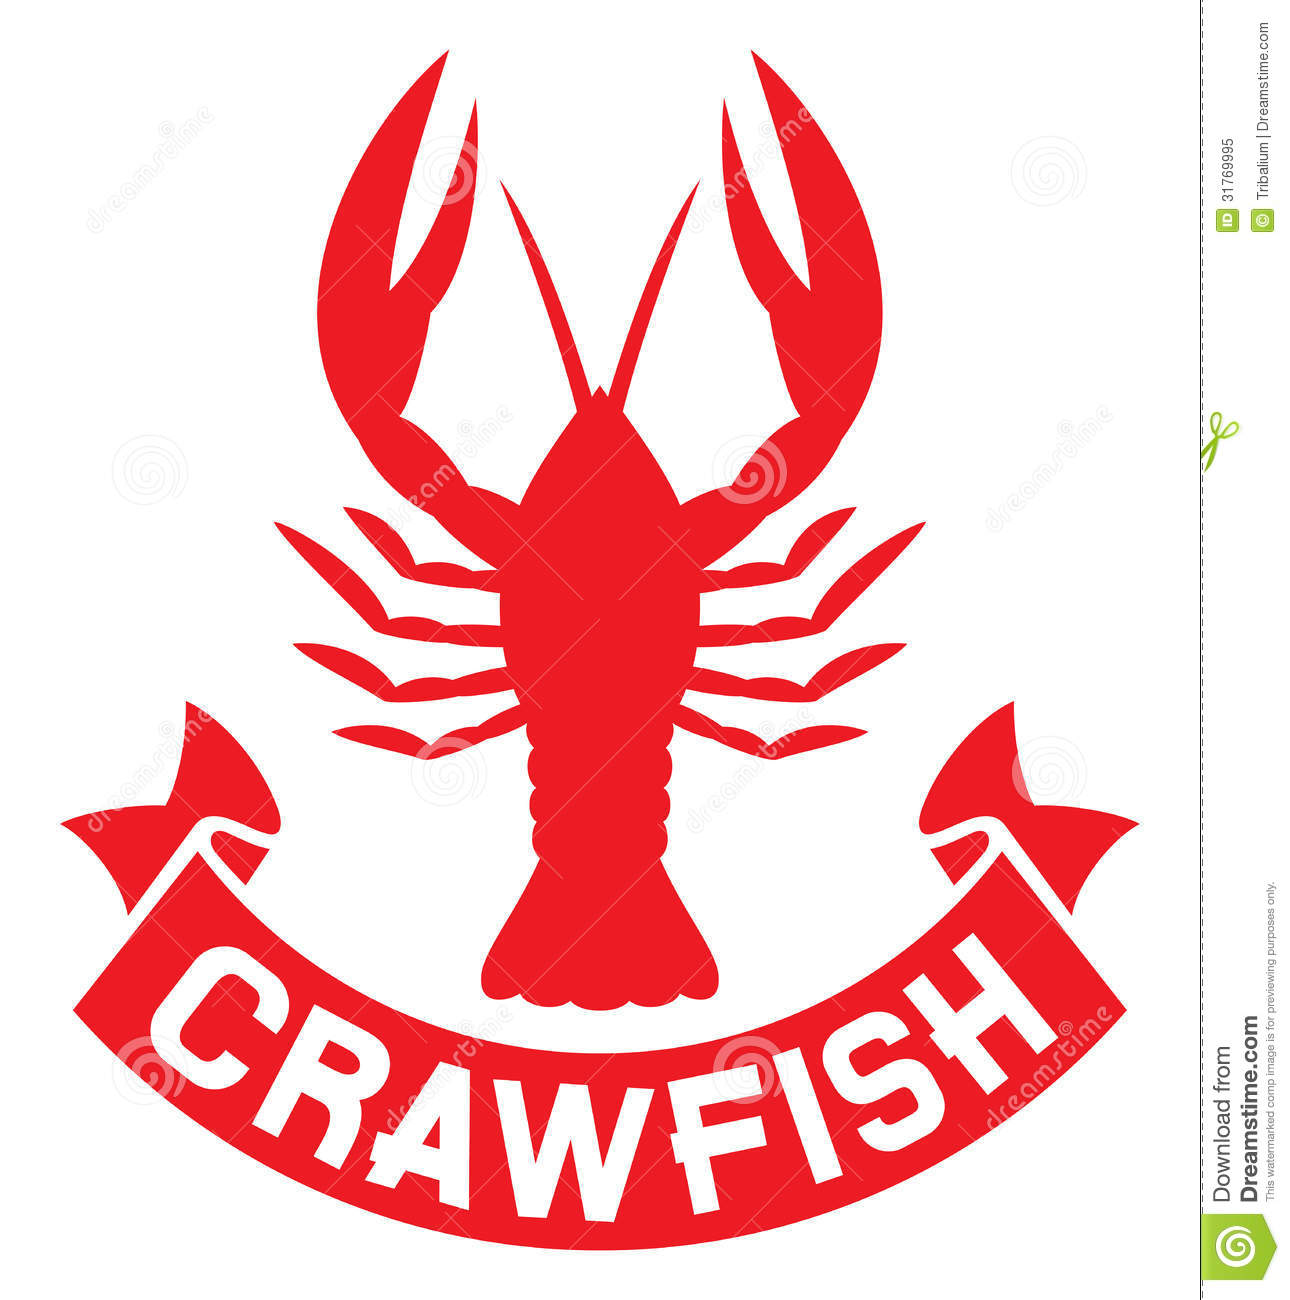 Crawfish silhouette, crayfish icon, lobster sign, crawfish symbol.